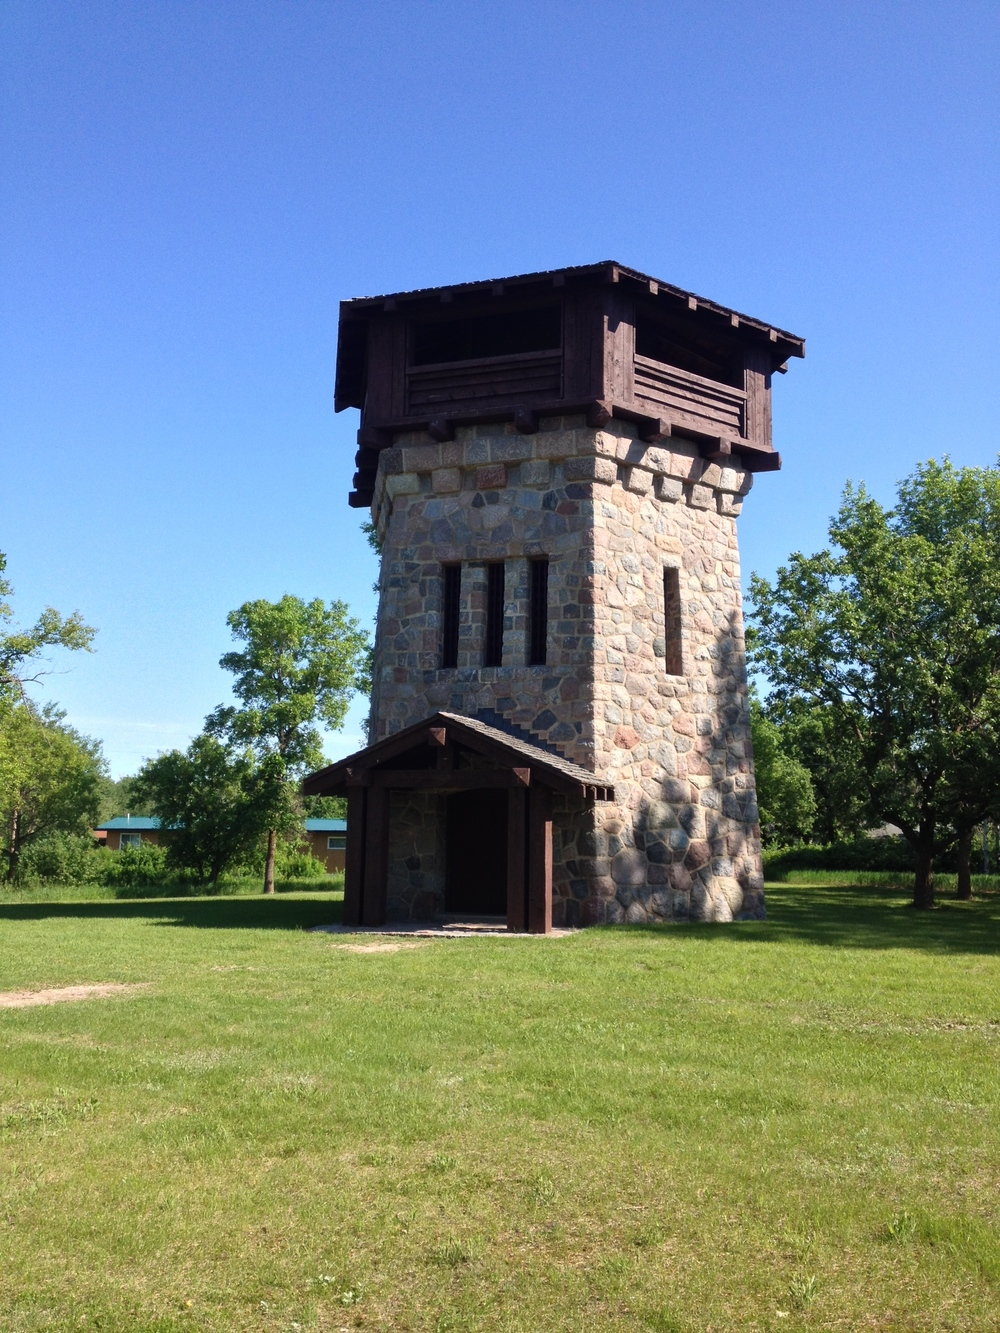 The CCC Watertower. Lake Bronson was host to one of the largest CCC Camps in the state.